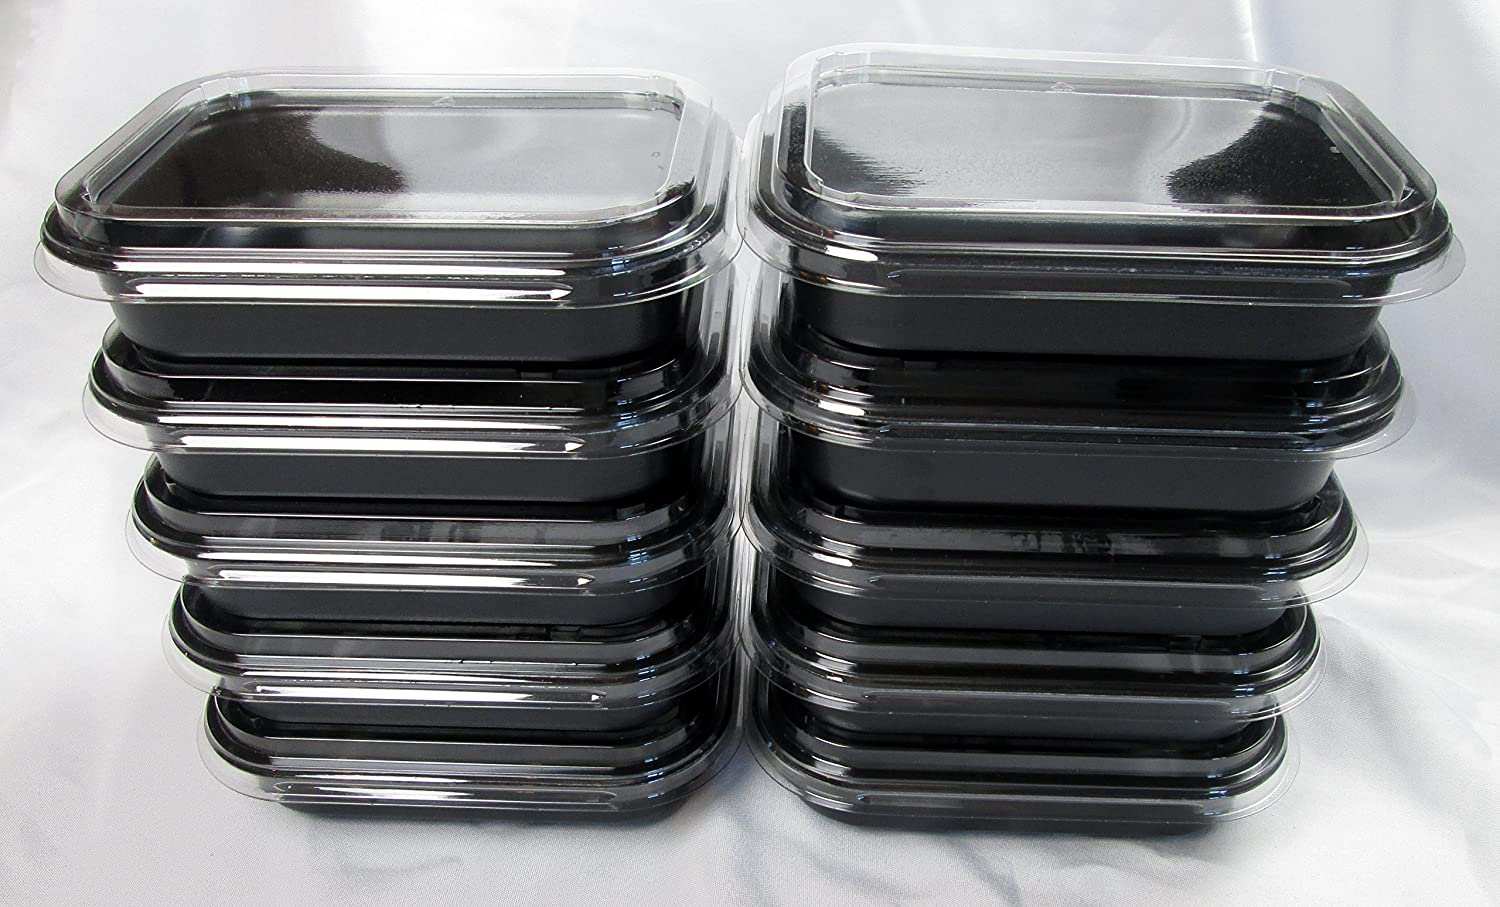 Frozen & Fabulous Meal Prep Containers with Clear Storage Lids, Oven, Microwave & Freezer-Safe, 16 fl oz, Set of 10, Black